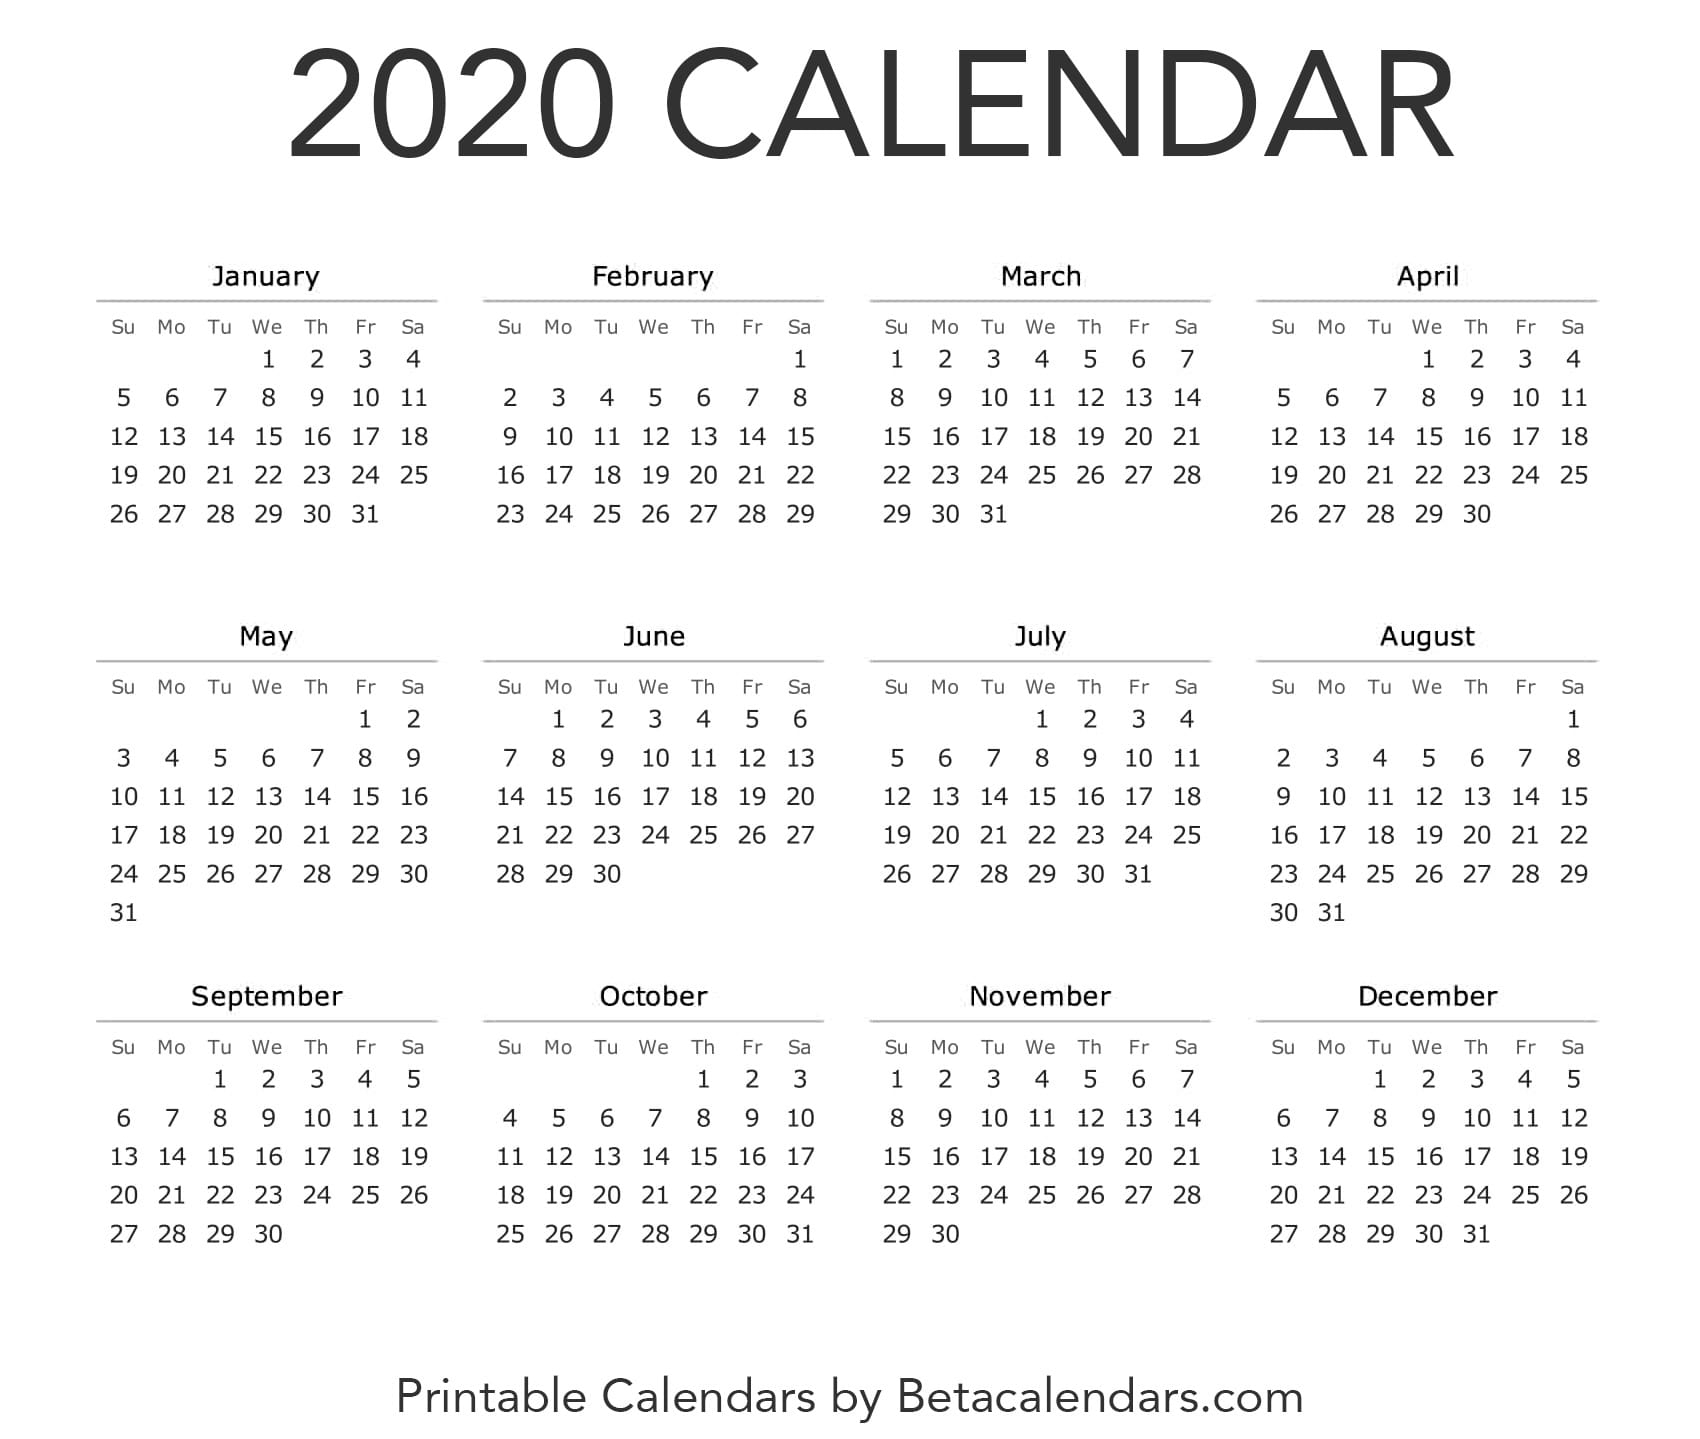 2020 Calendar - Free Printable Yearly Calendar 2020